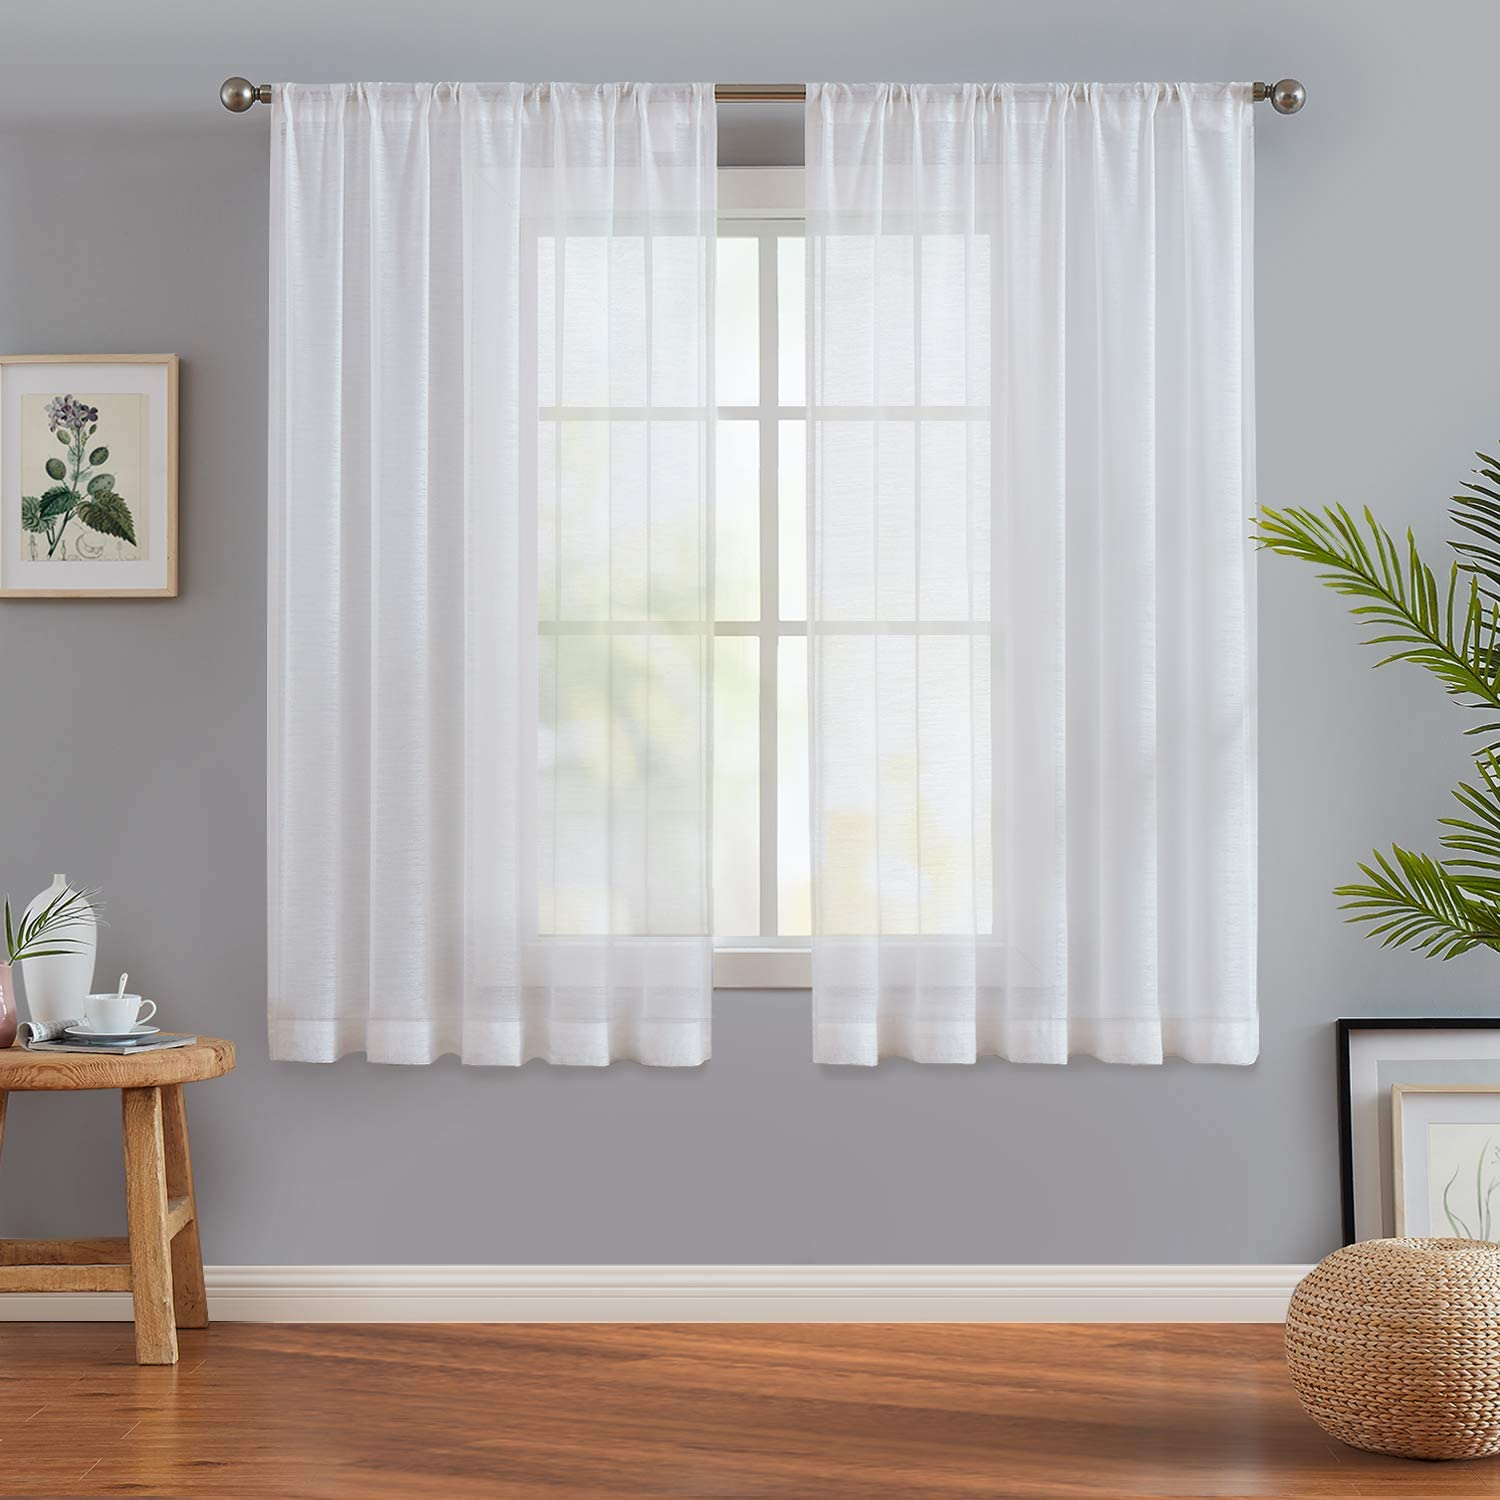 Extra Wide White Cream Grey  semi sheer SLUBBED COTTON Look voile Curtain Panel ** All Sizes available **